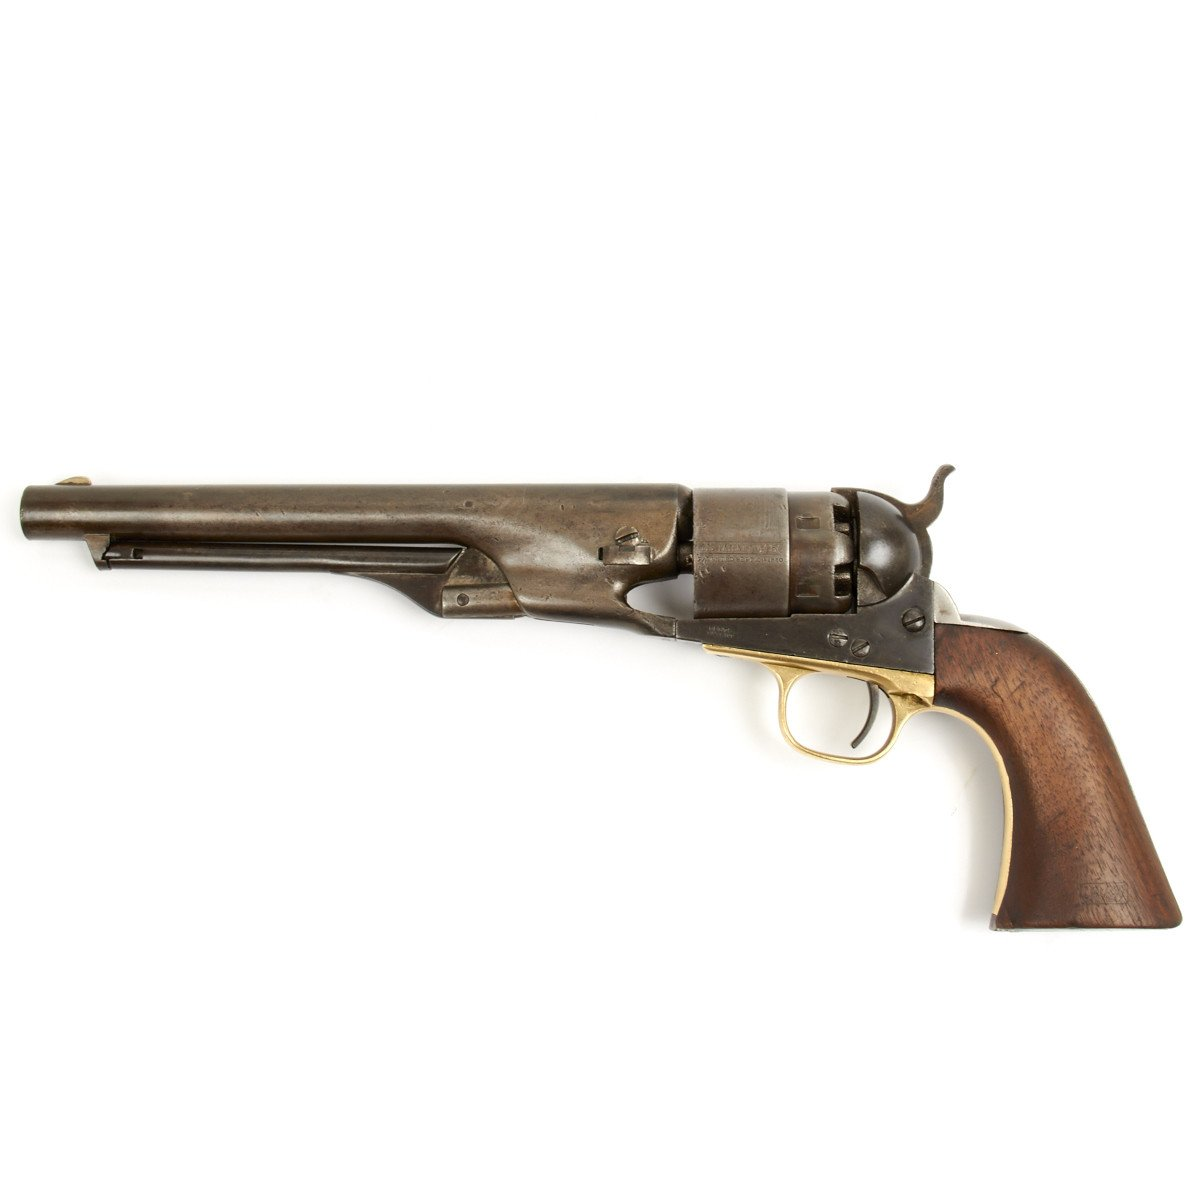 31626f26e72 Tap to expand · Next · Original U.S. Civil War Colt Model 1860 Army Revolver  Manufactured in 1863 ...